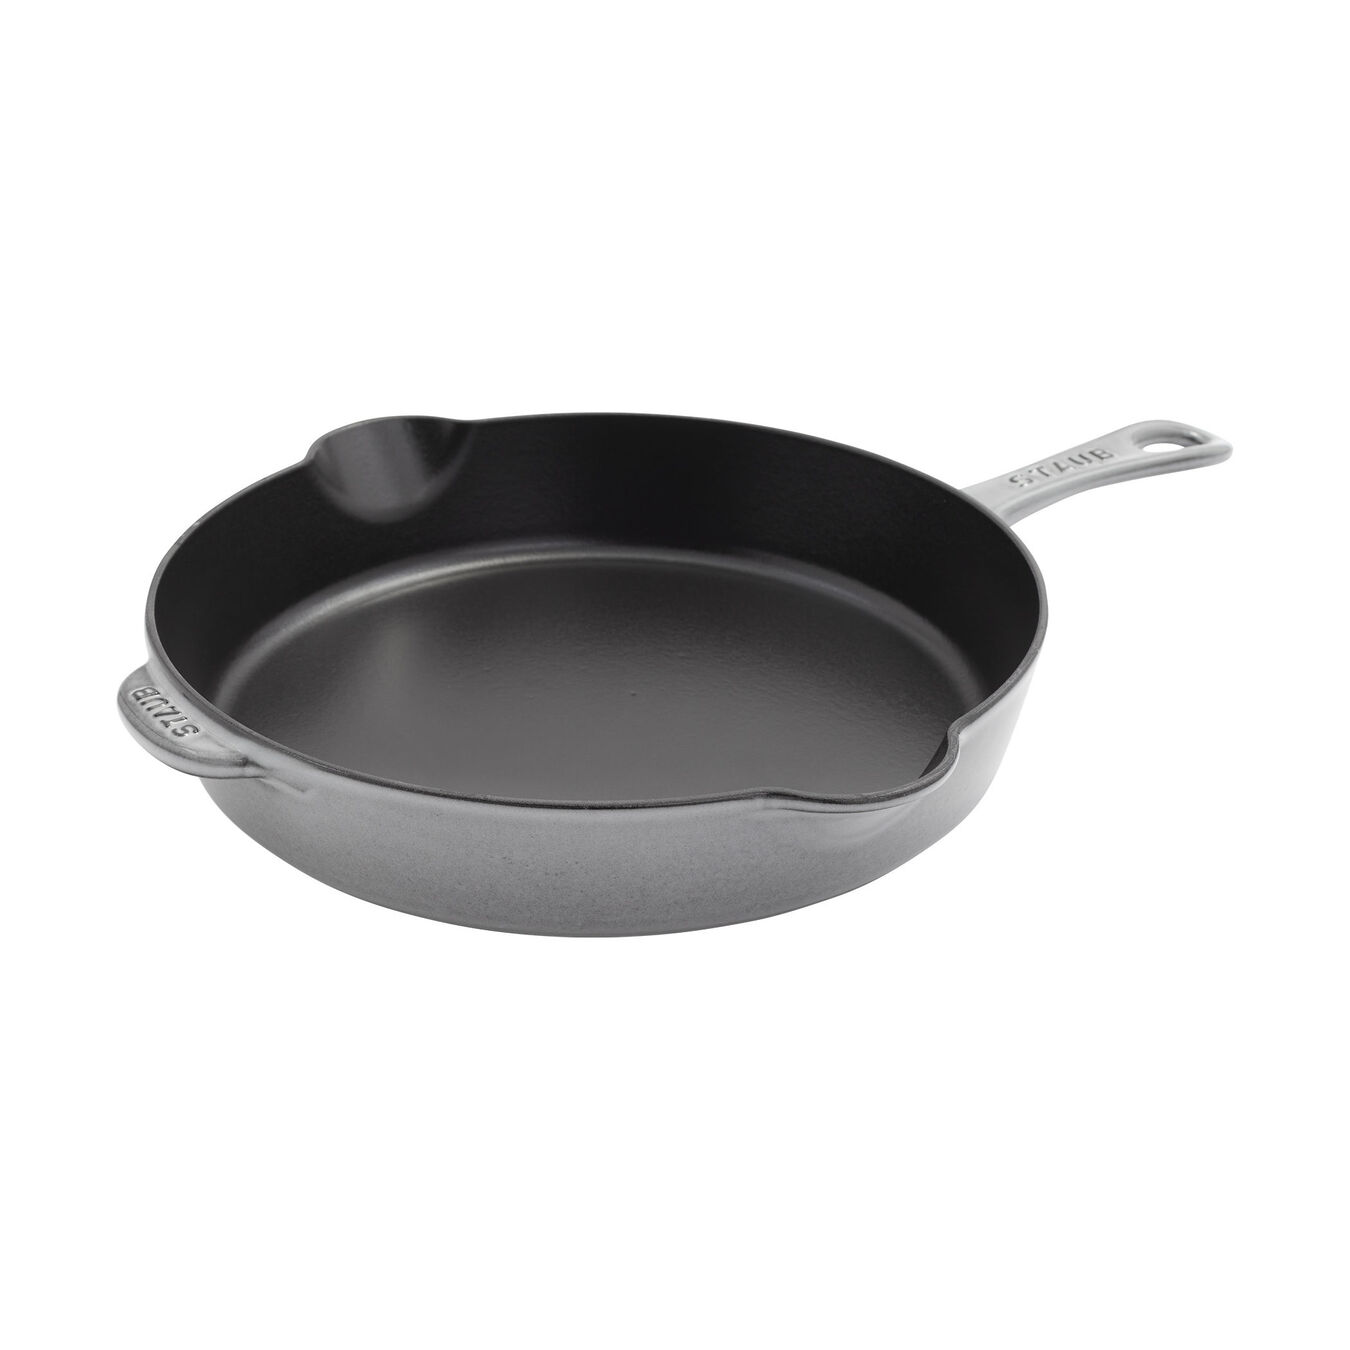 11'' Traditional Skillet - Graphite Grey,,large 1